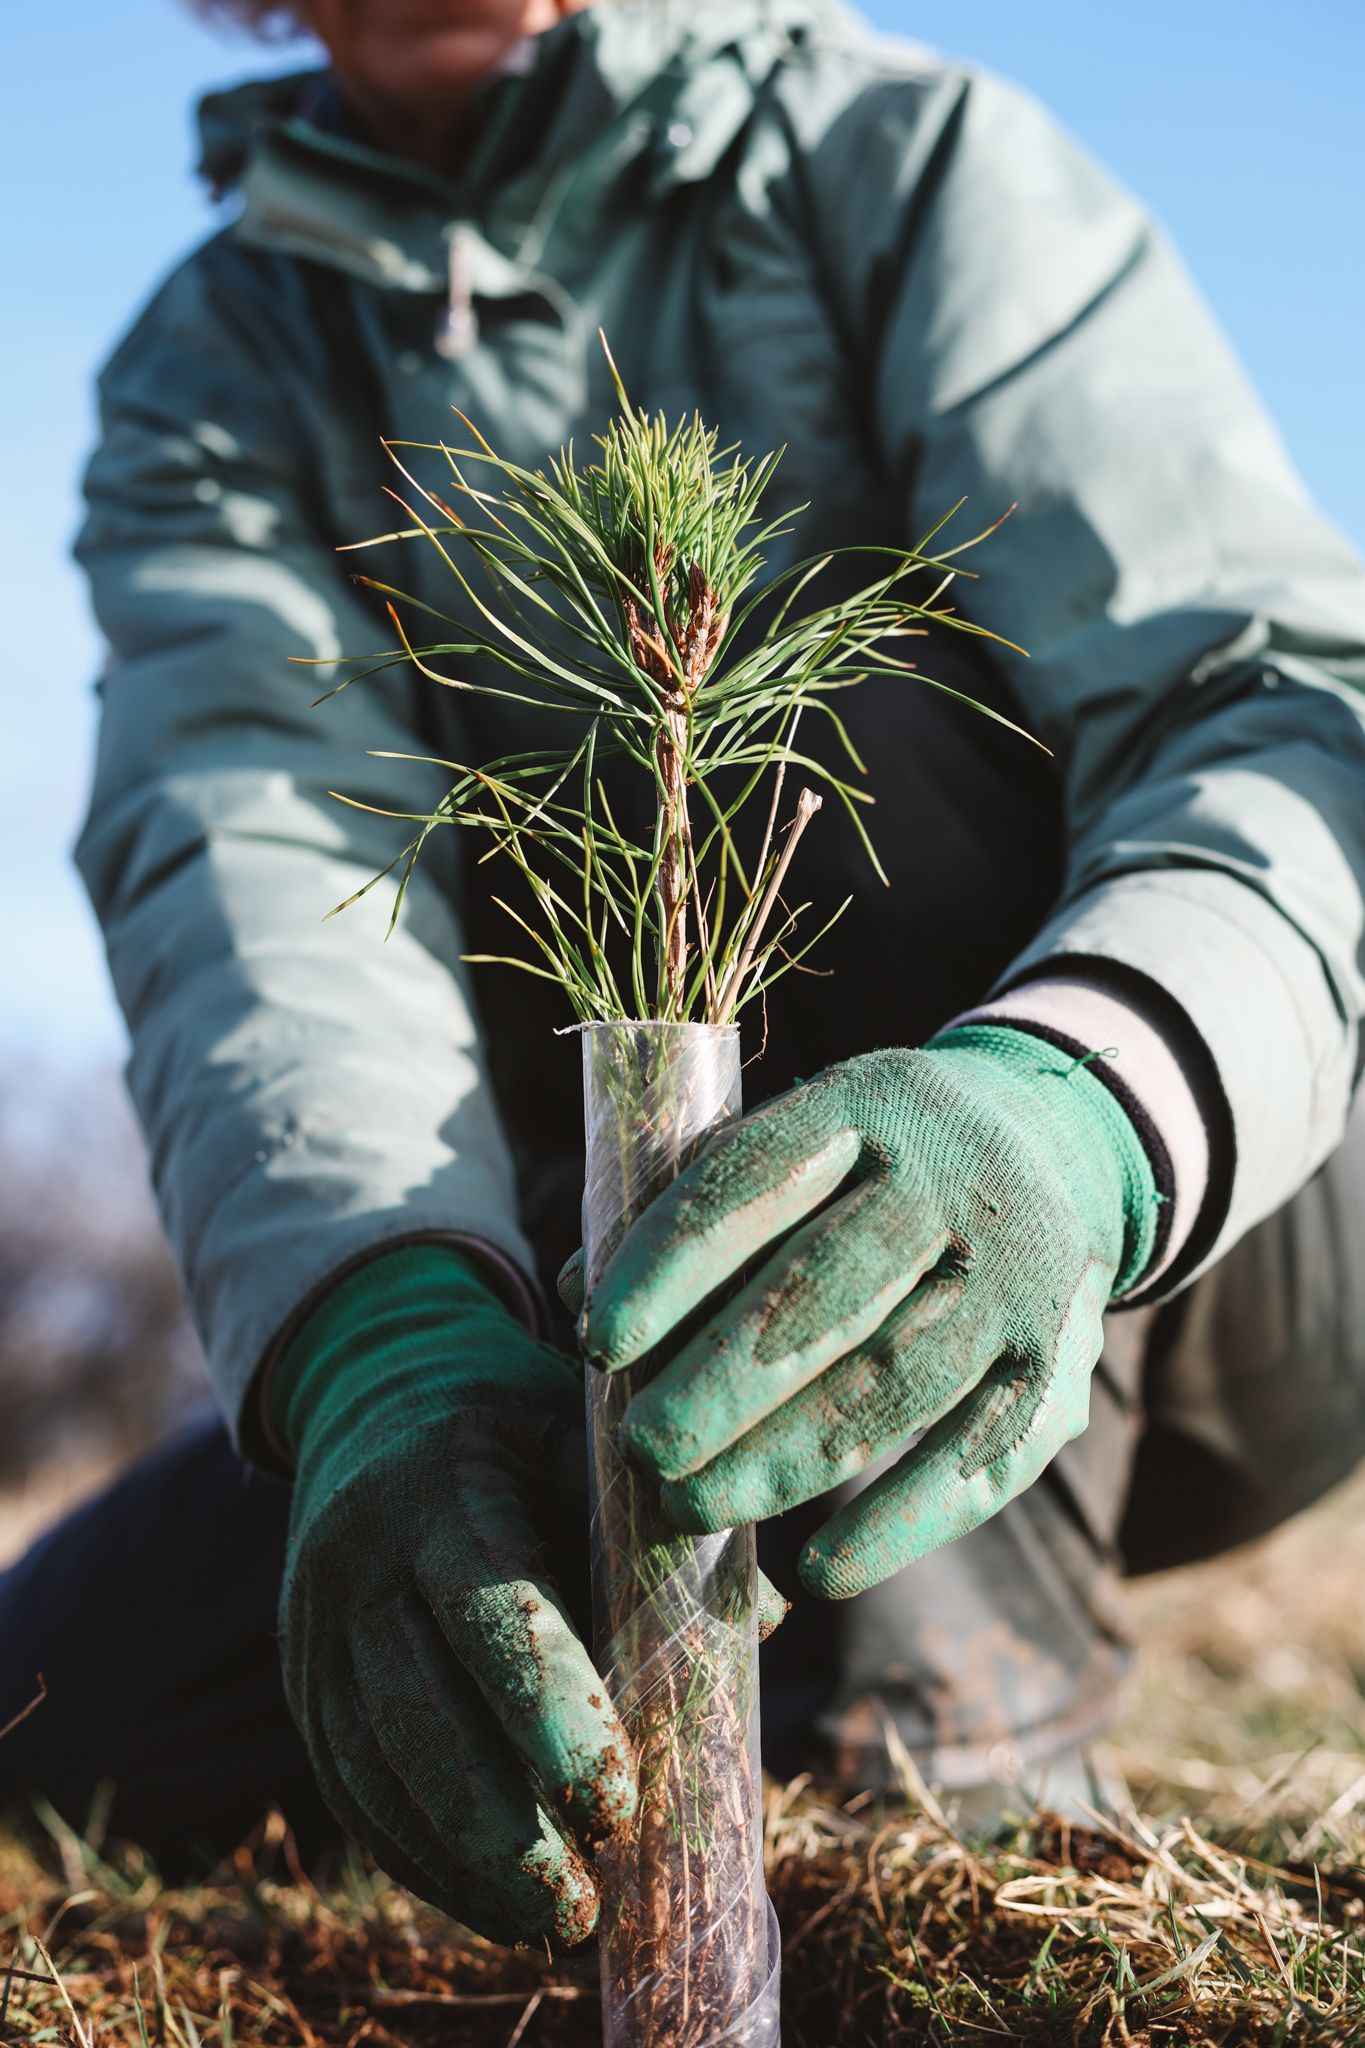 Planting trees for the planet in Scotland. Native Scots pine sapling